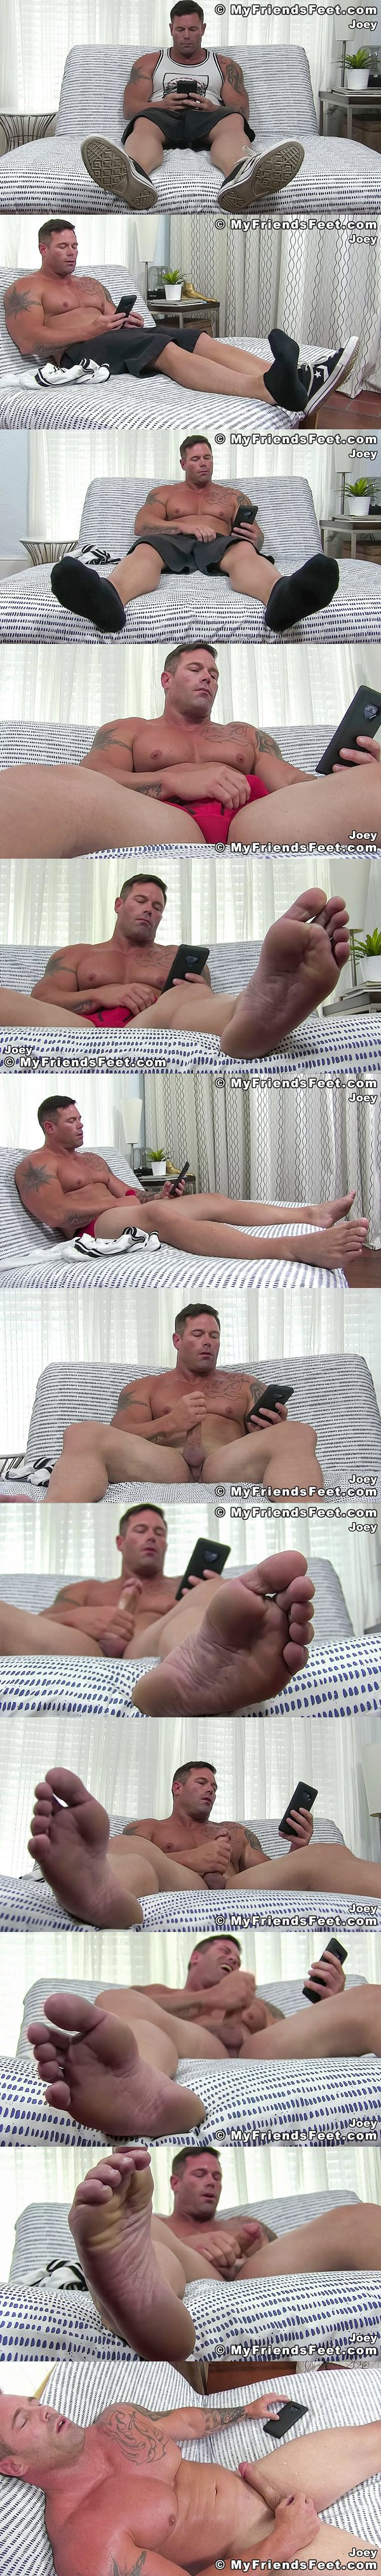 Masculine straight beefcake, bodybuilder Joey J jerks off for the first time on camera until he shoots a big relaxing load at Myfriendsfeet